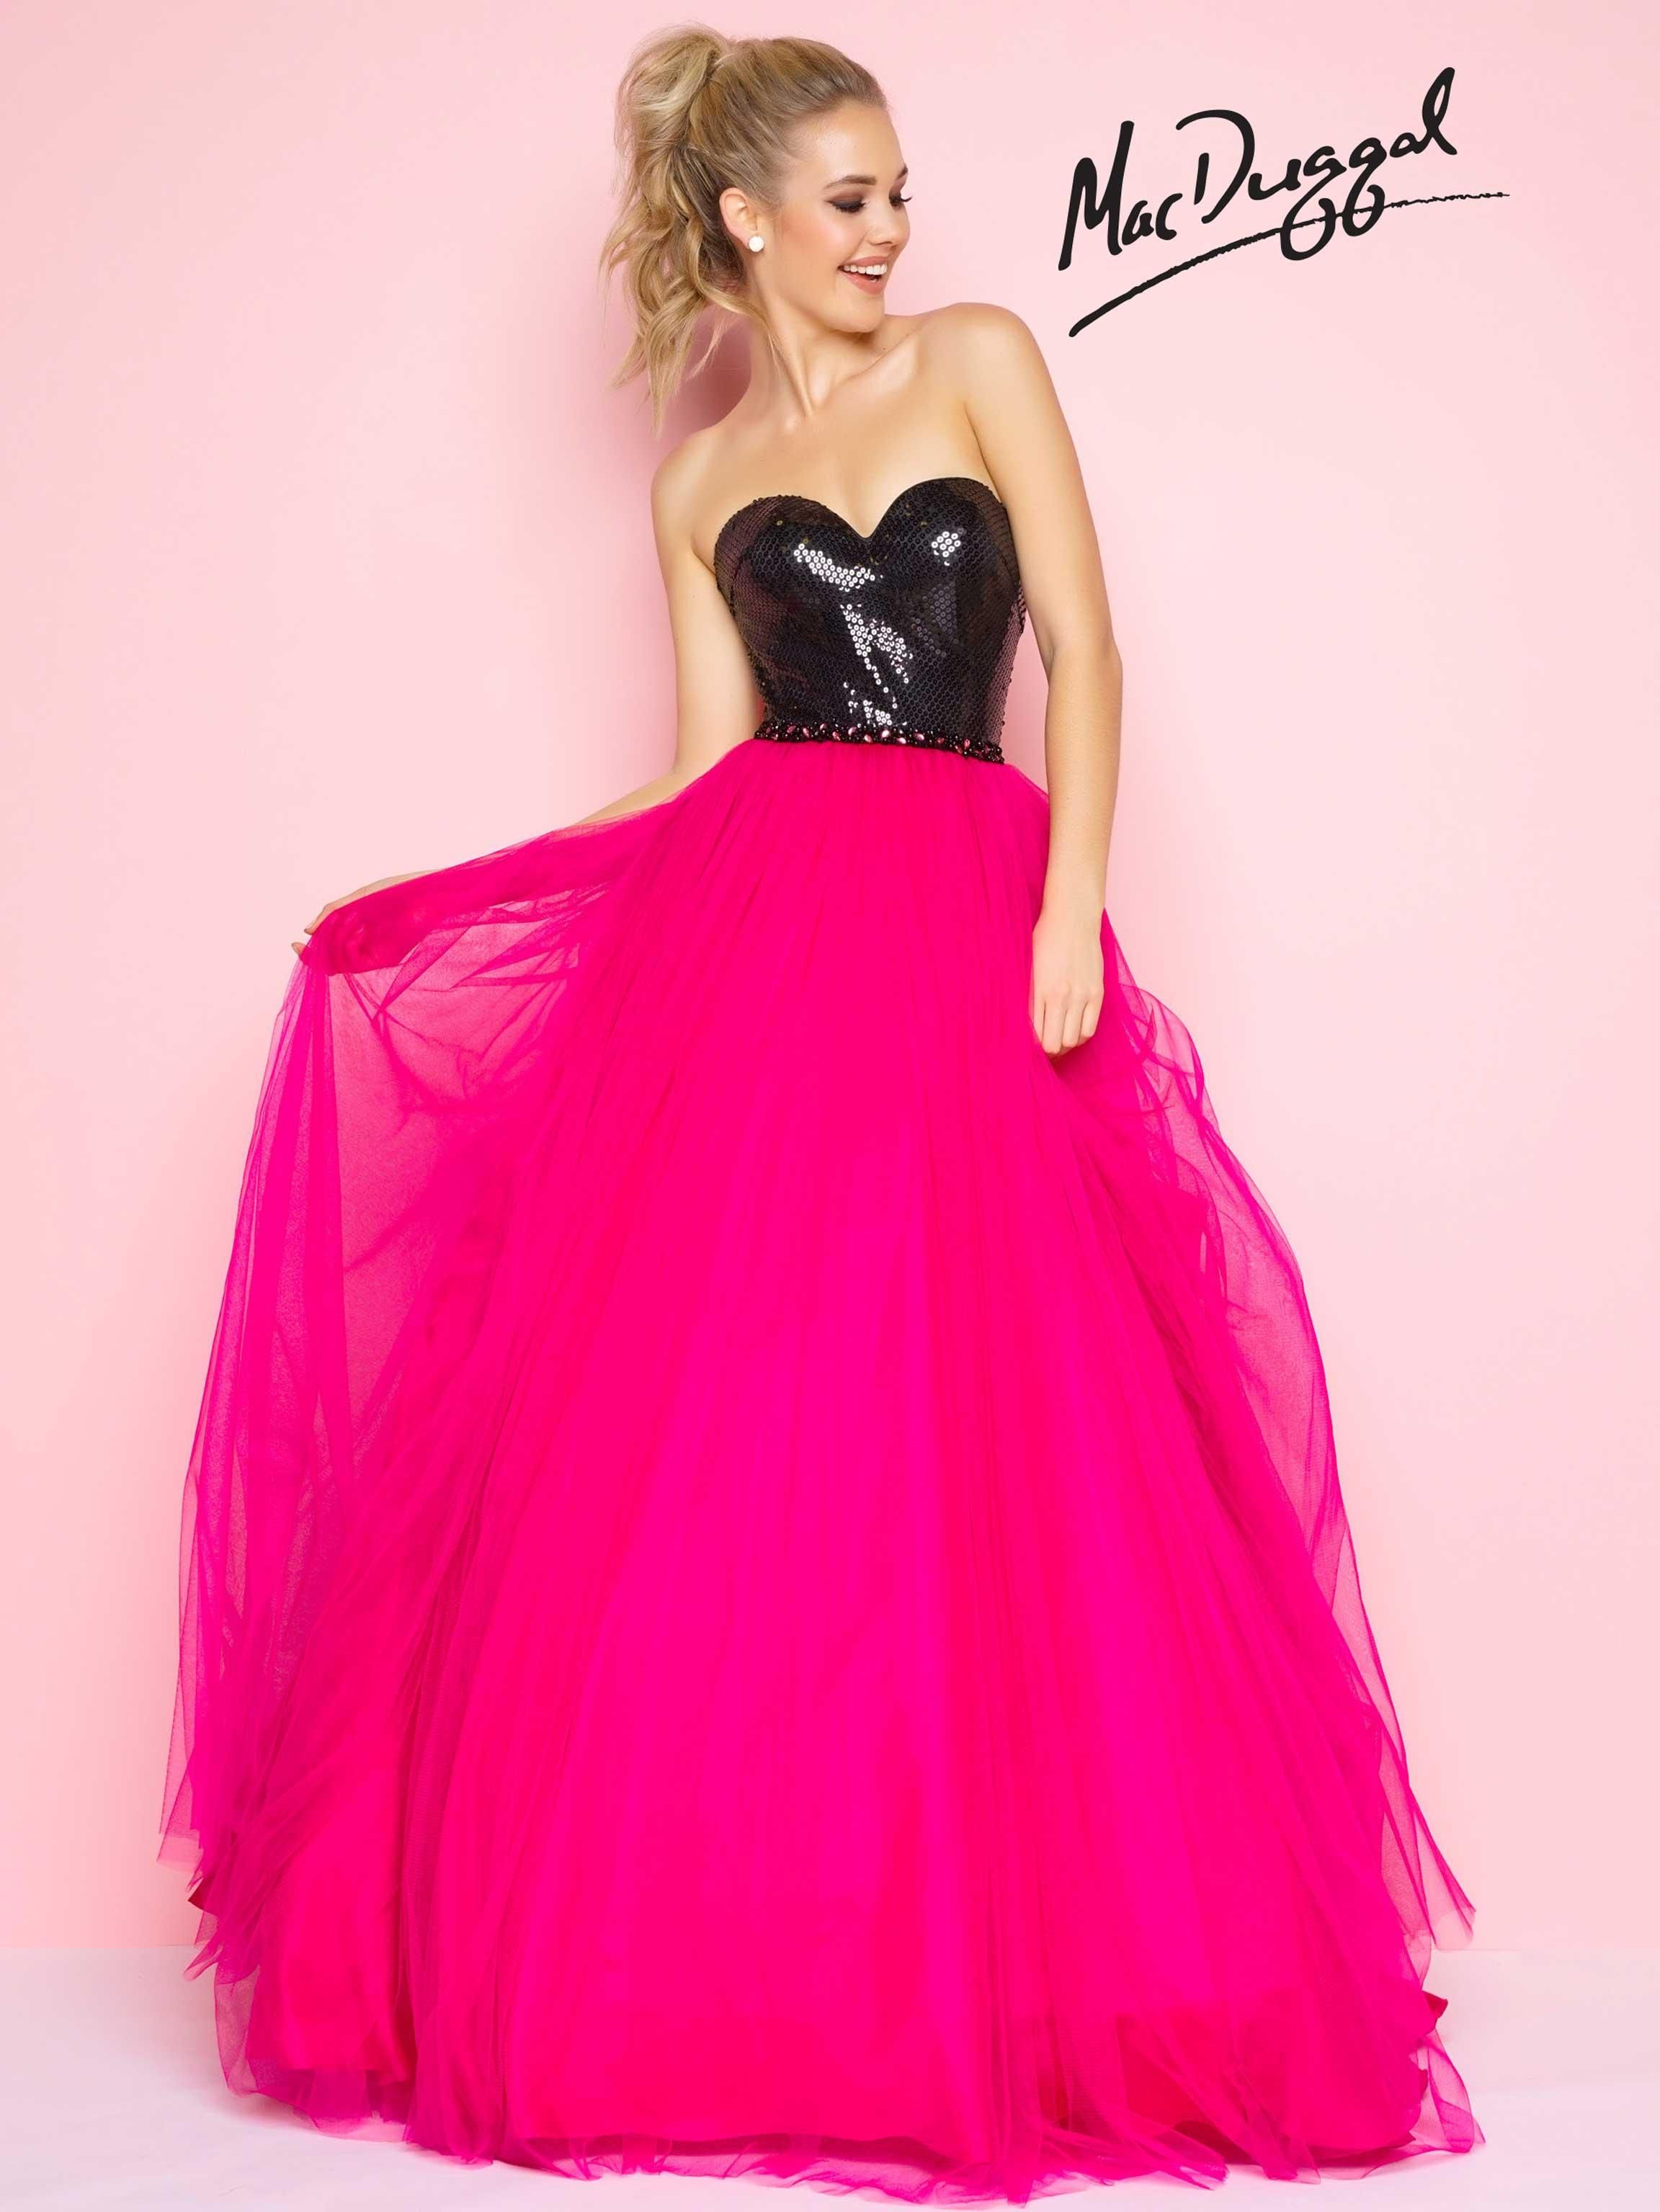 Style Search Results | Mac Duggal | Vestido de Grado | Pinterest ...